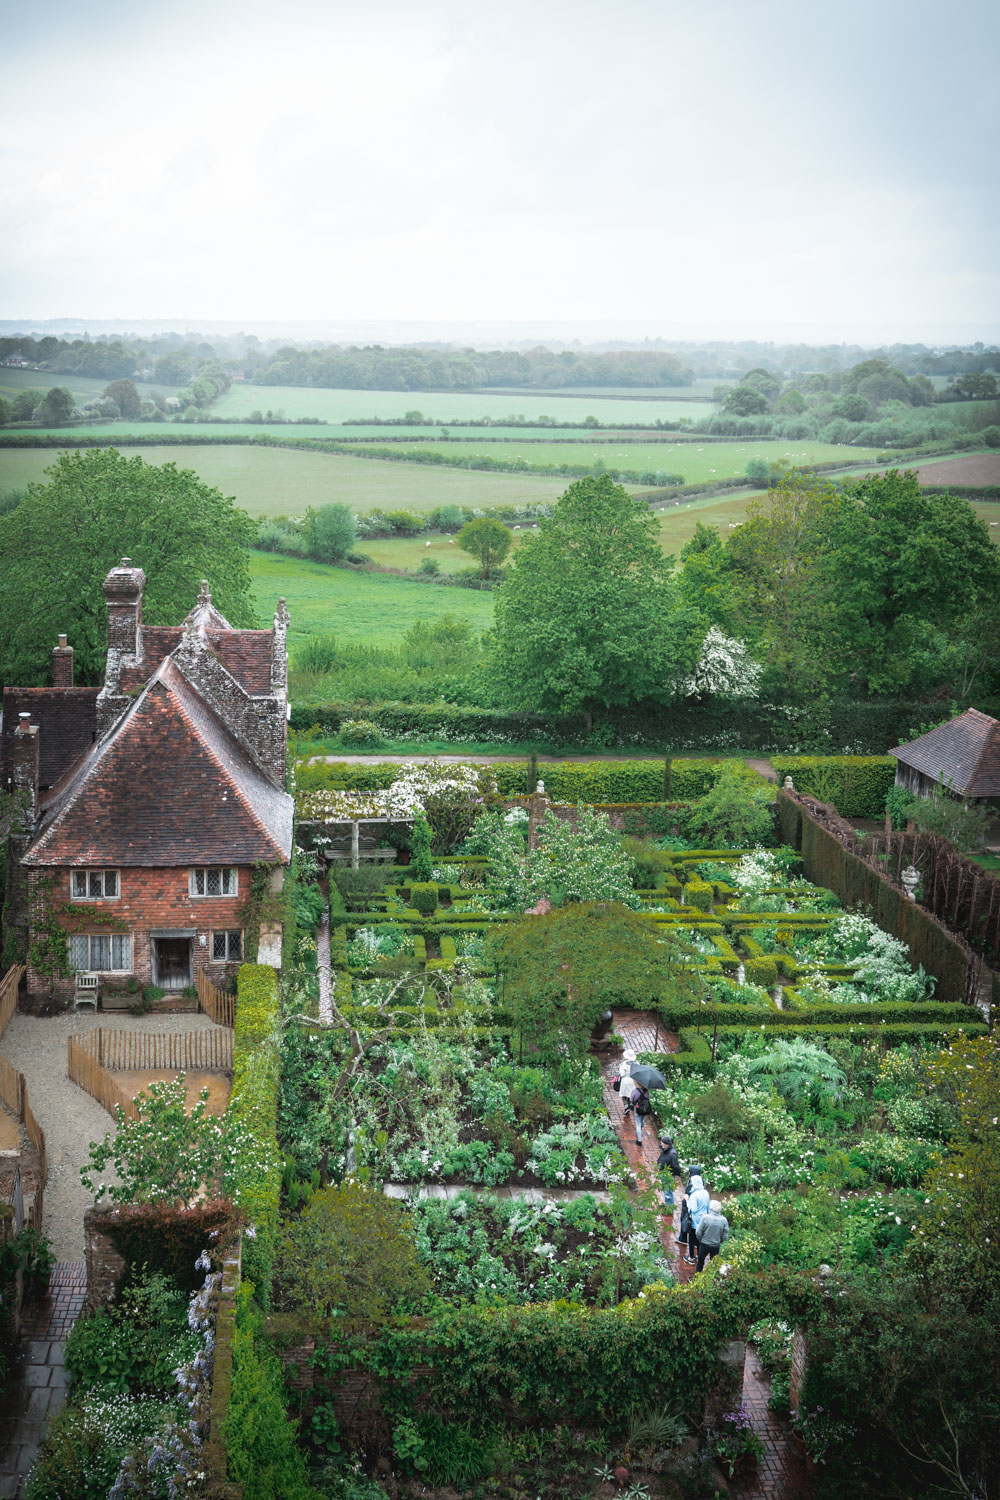 View-of-the-garden-and-countryside-from-Sissinghurst-Caste-Tower.jpg